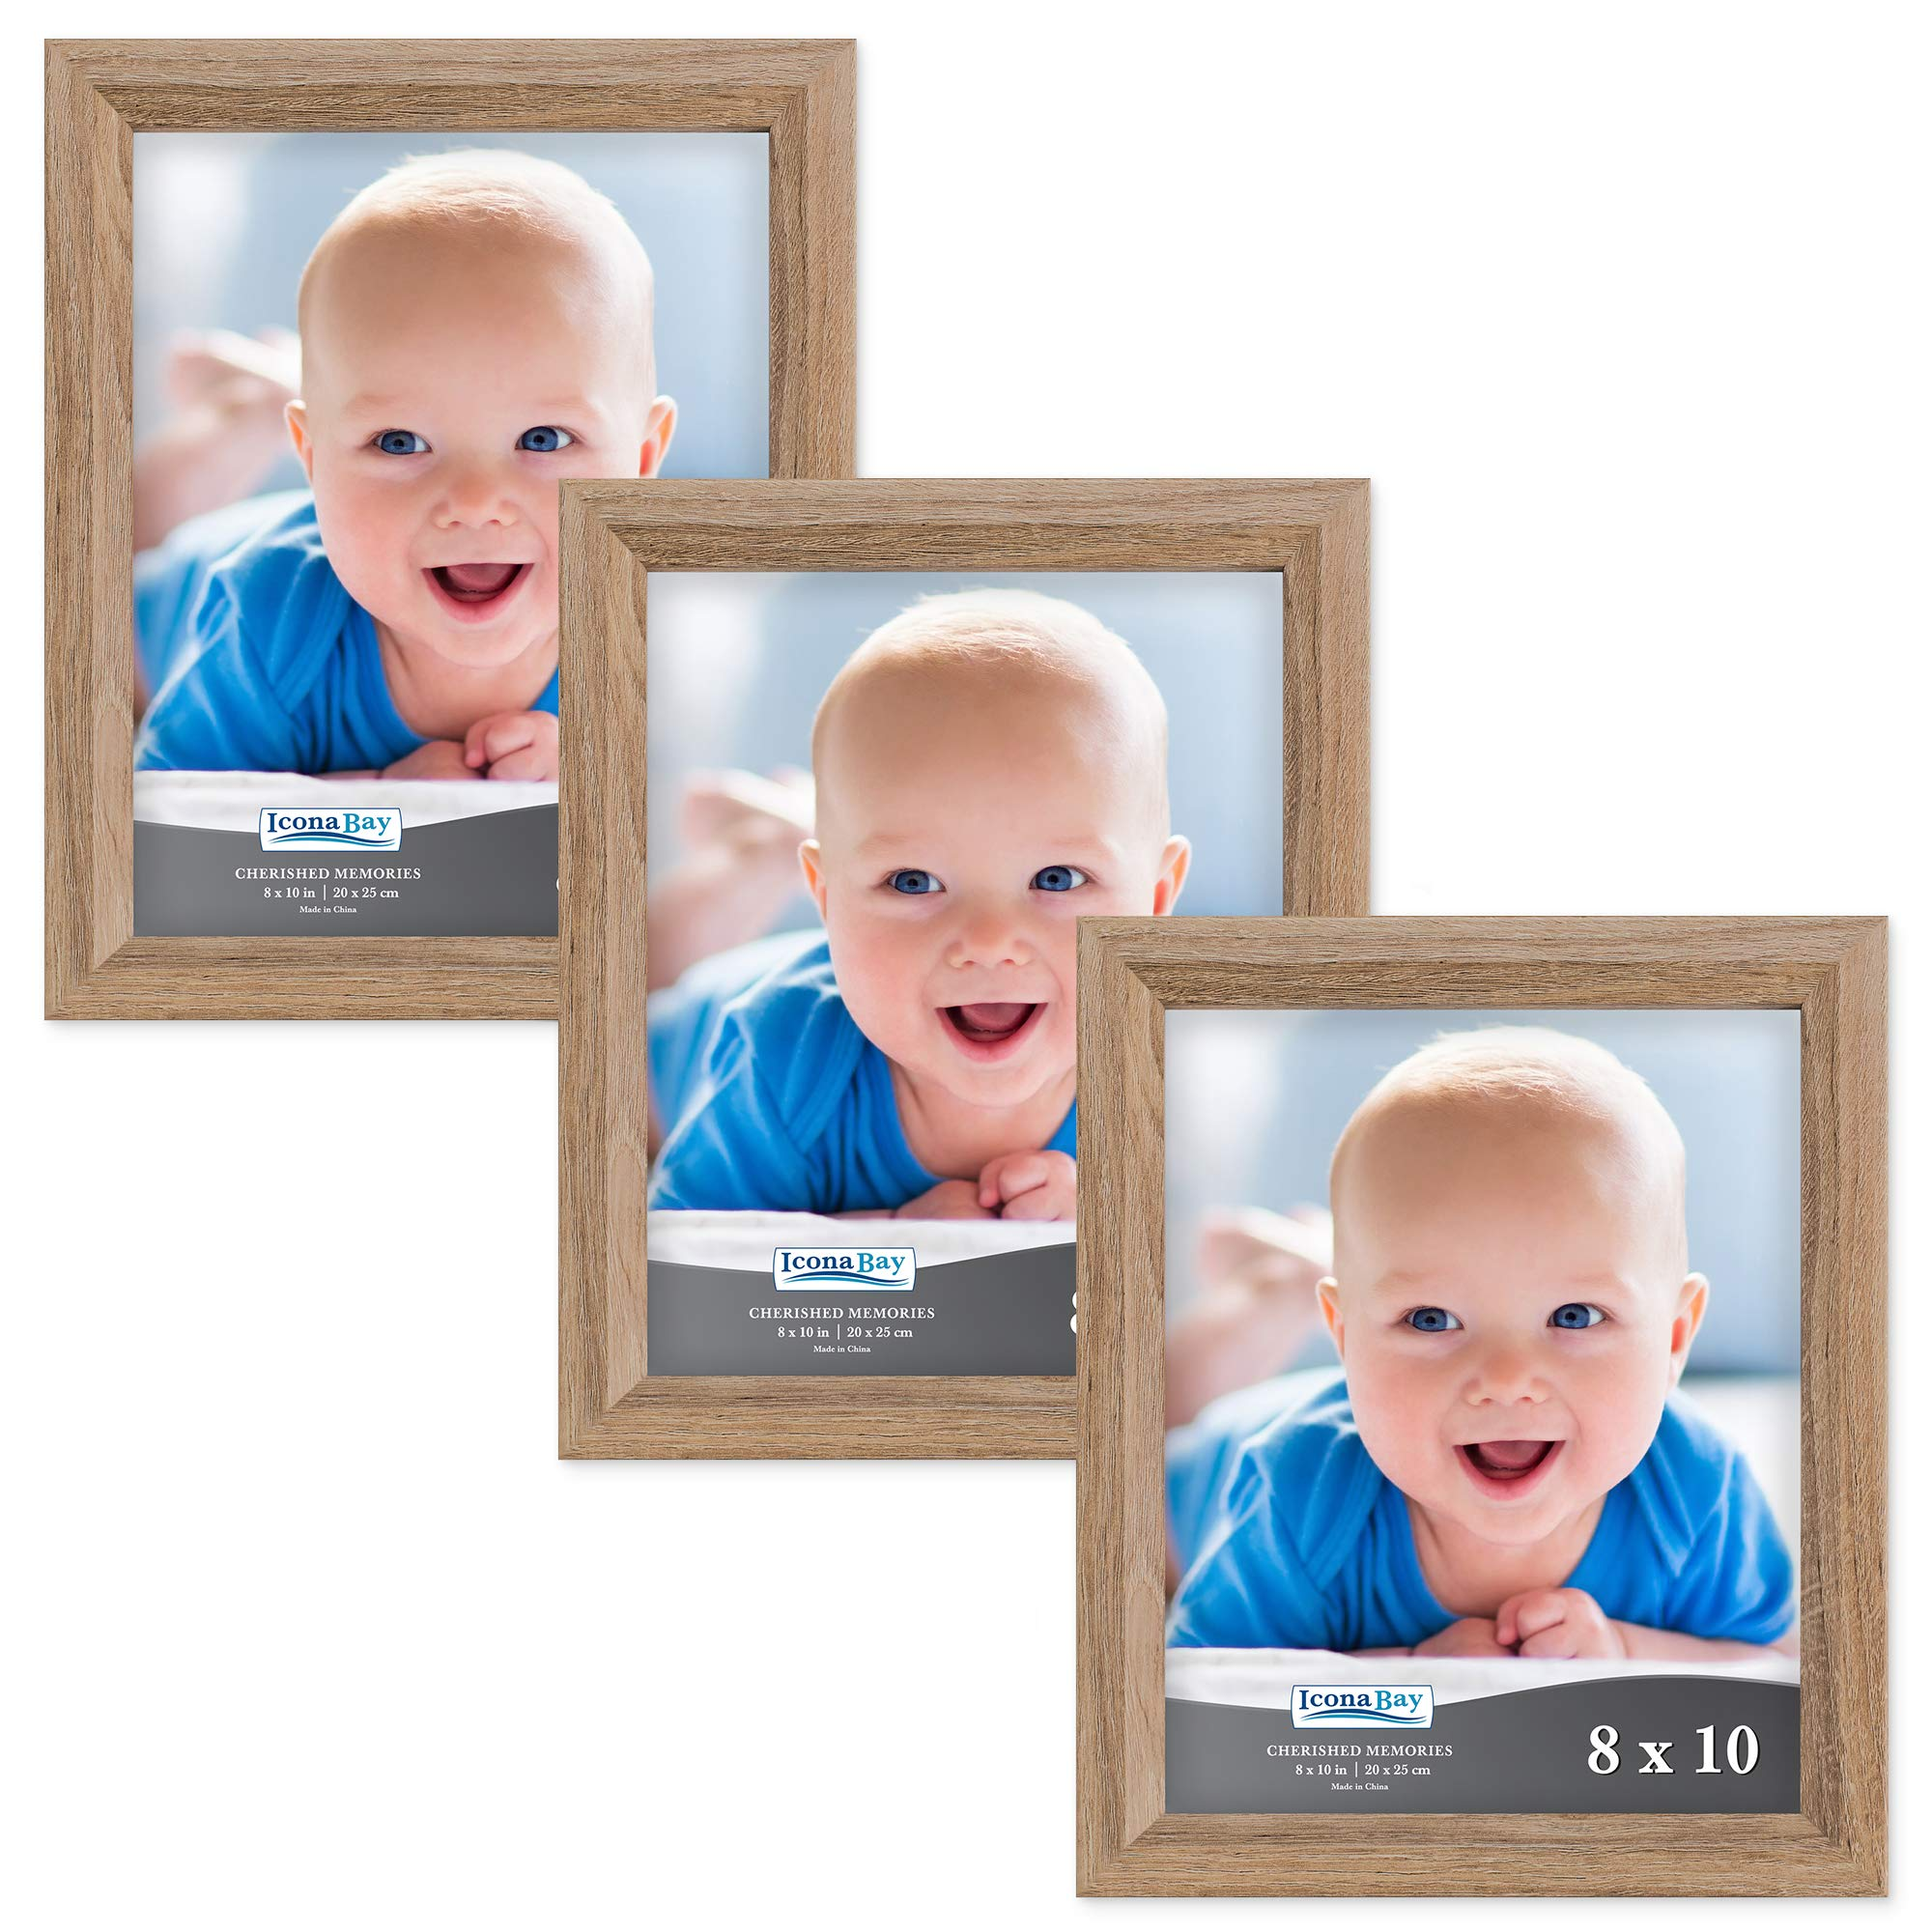 Icona Bay 8x10 Picture Frame (3 Pack, Dark Oak Wood Finish), Photo Frame 8 x 10, Composite Wood Frame for Walls or Tables, Set of 3 Cherished Memories Collection by Icona Bay